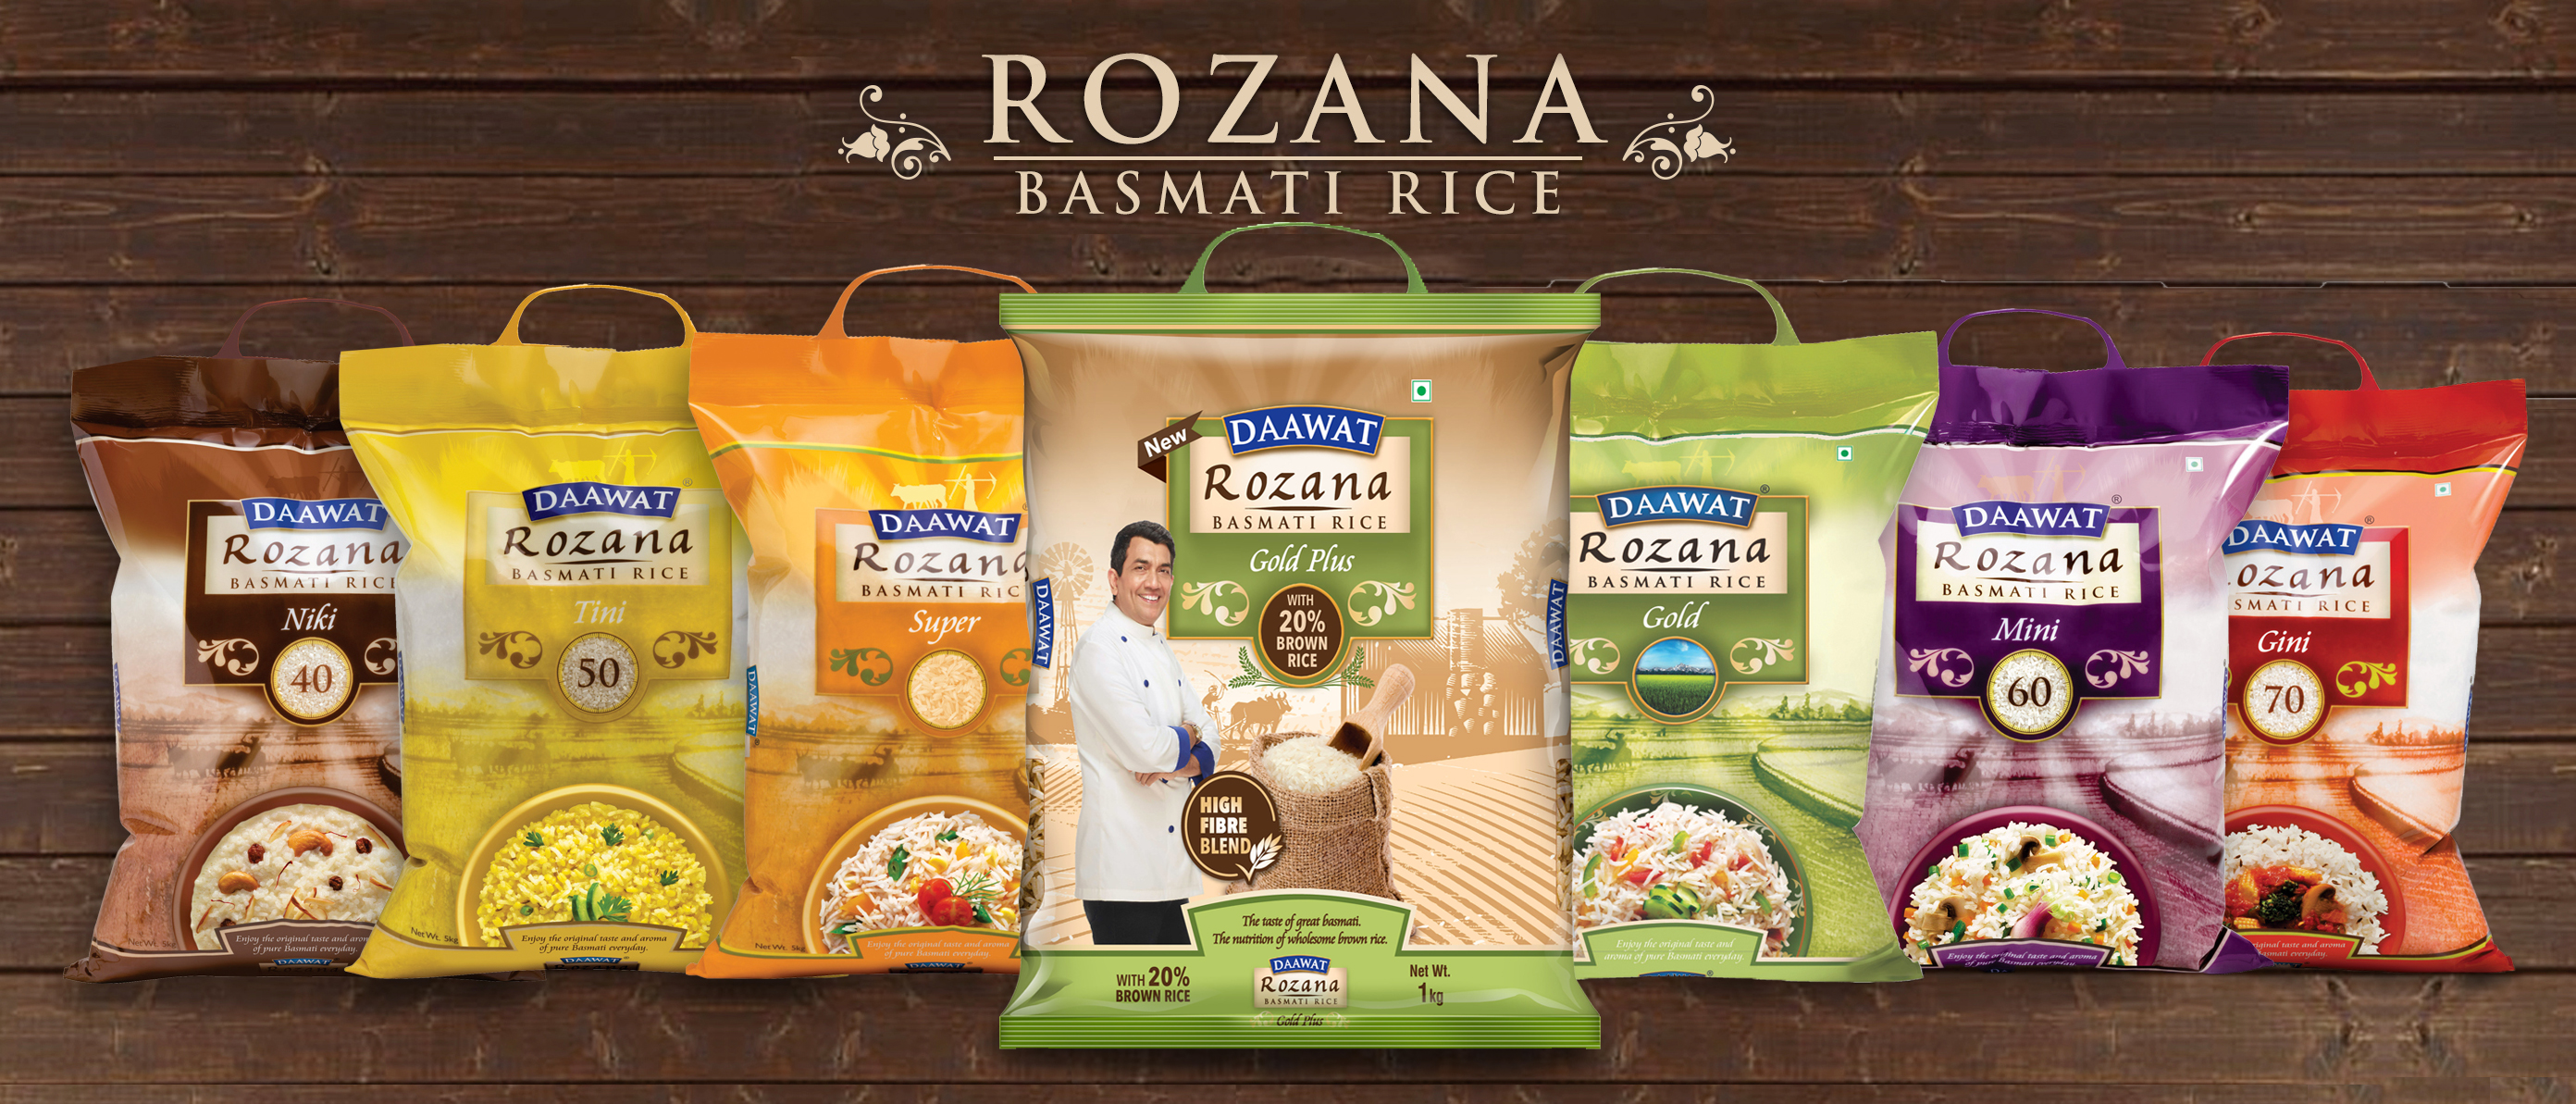 Daawat Rozana Basmati Rice Products